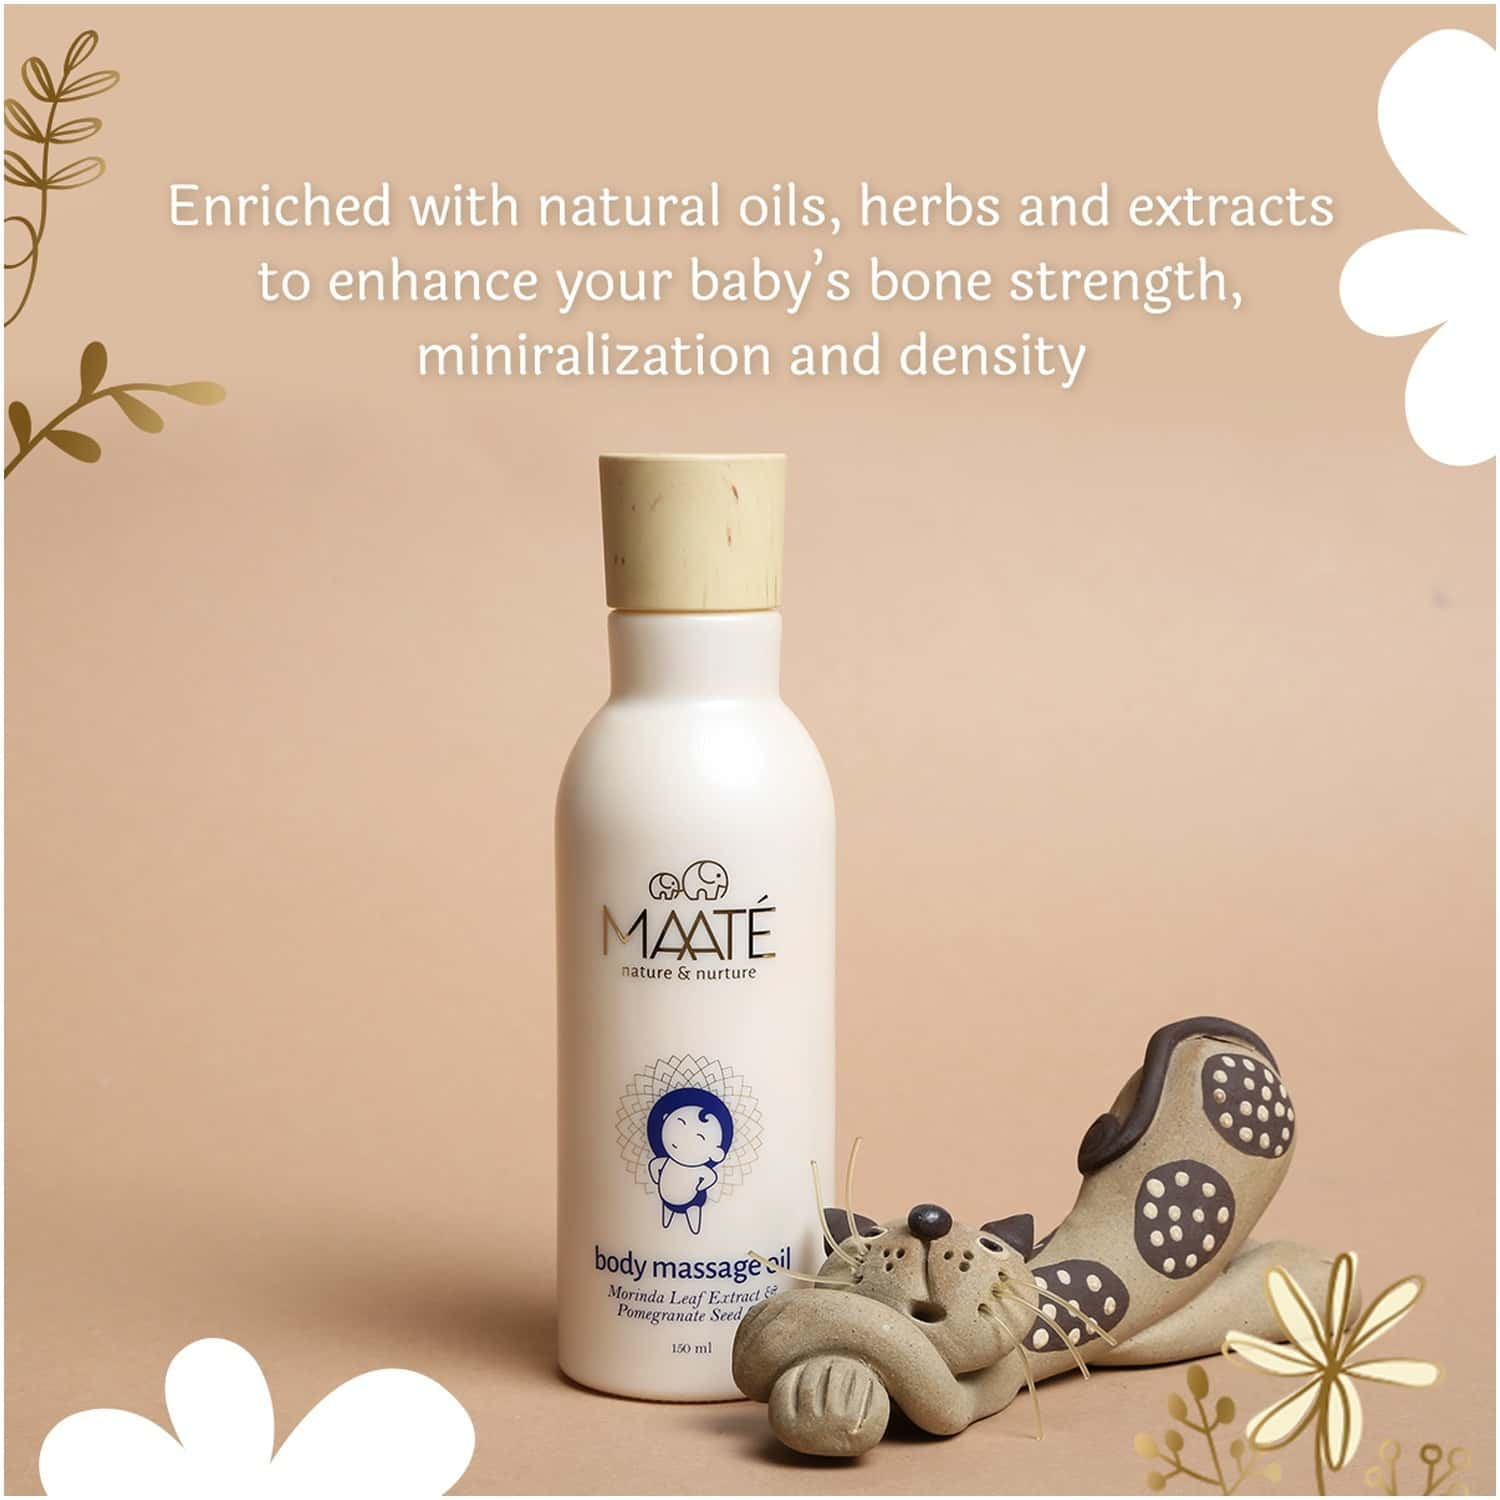 Maate Baby Body Massage Oil Enriched With Nature's Best Herbs, Premium Oils And Plant Extracts 150ml